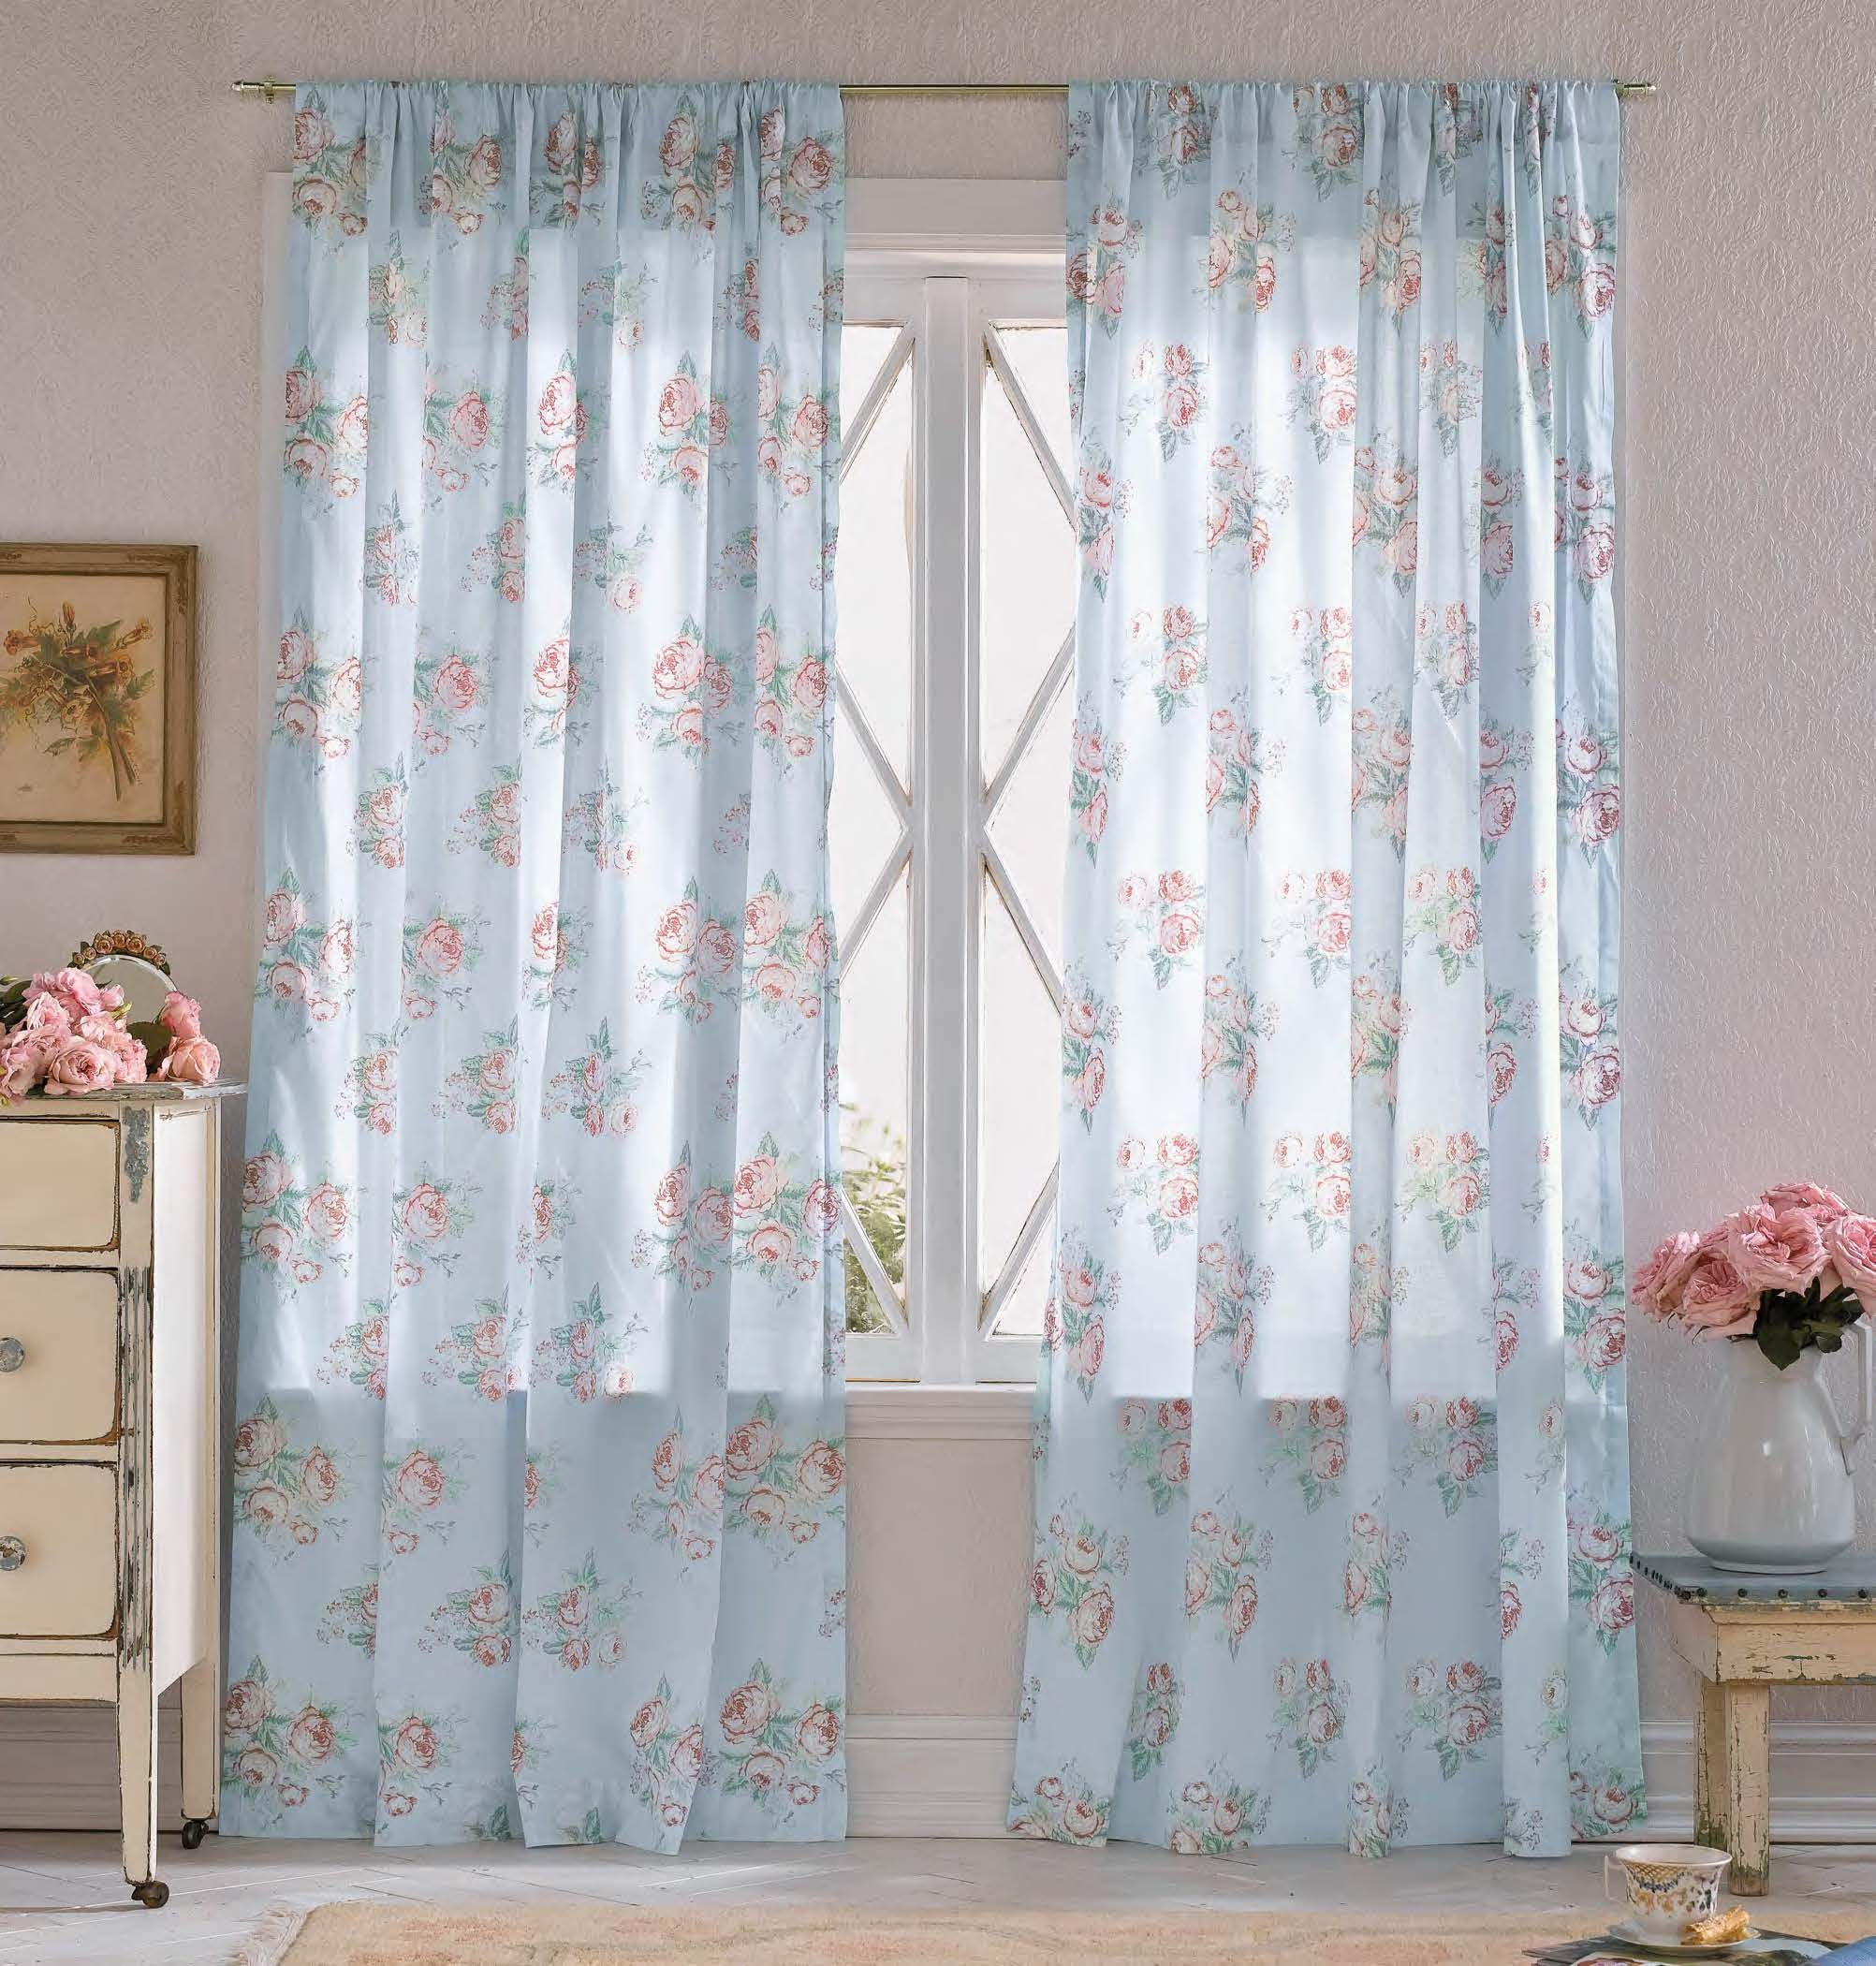 pin diy blackout target white curtain bedroom and trim curtains pinterest ruffle decorations